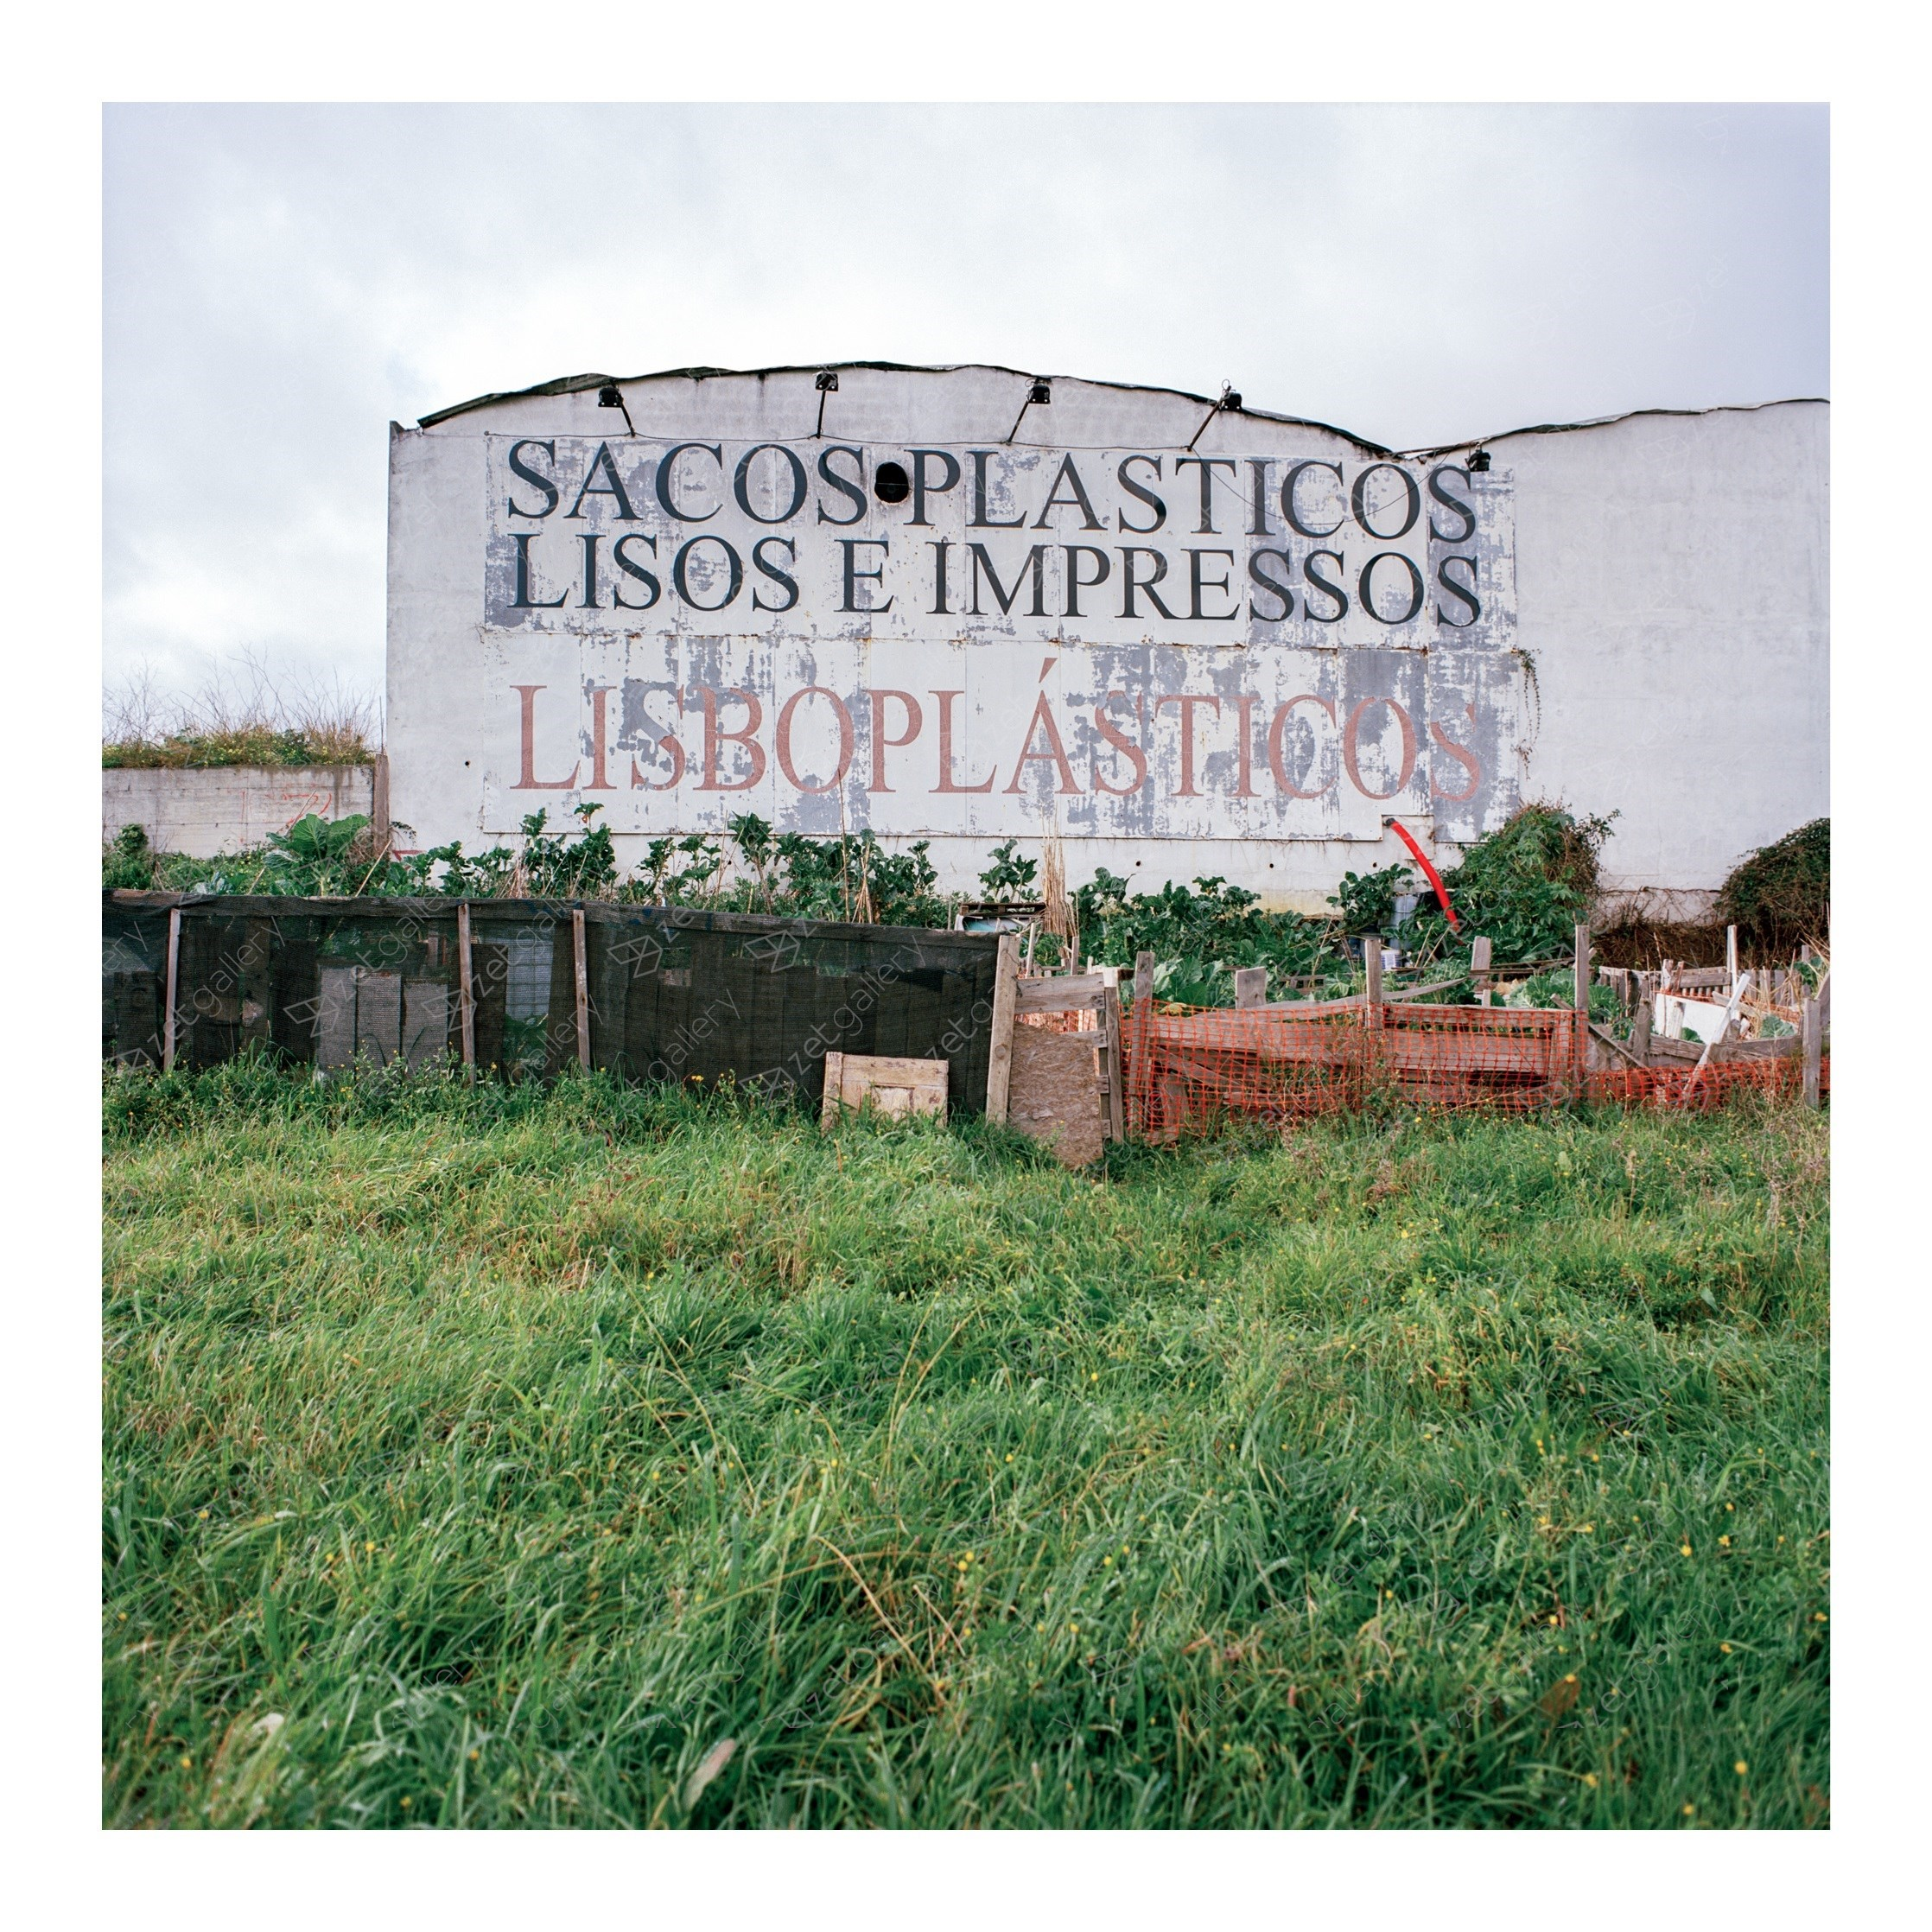 Untitled, original Landscape Analog Photography by João Pedro Machado